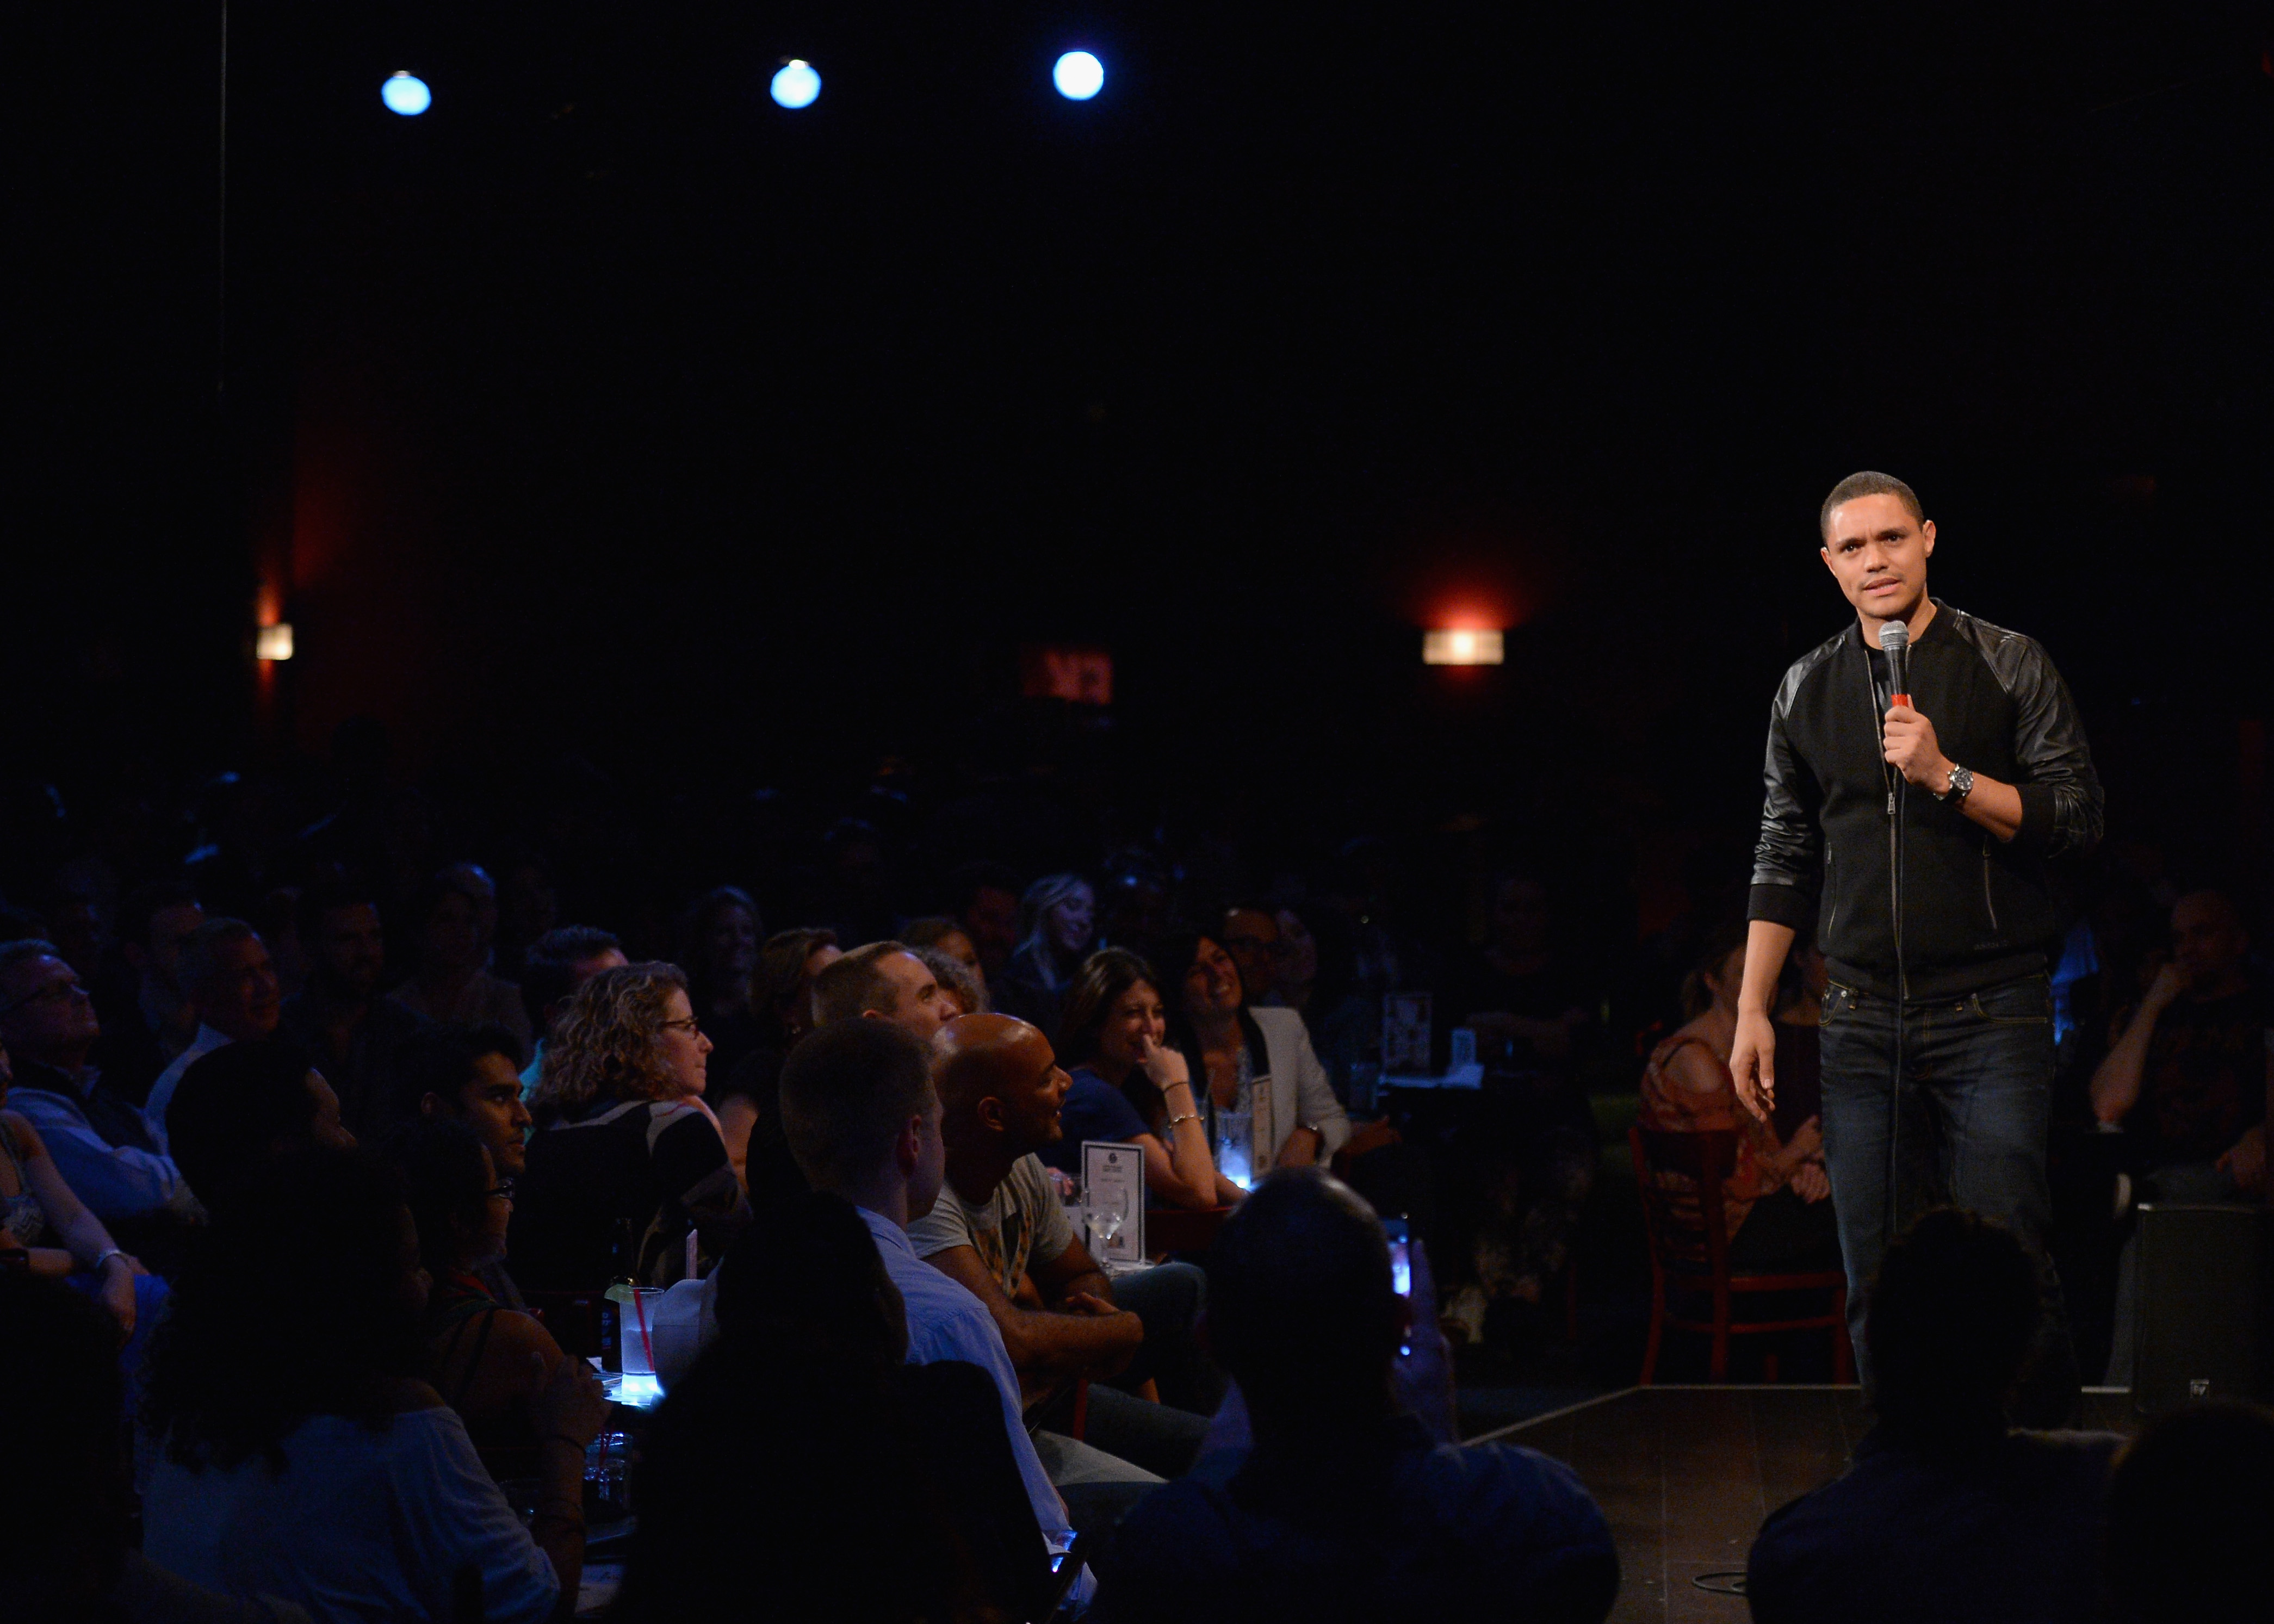 NEW YORK, NY - SEPTEMBER 29:  Comediann Trevor Noah performs onstage at Stand Up LIVE! during Advertising Week 2015 AWXII at the Gotham Comedy Club on September 29, 2015 in New York City.  (Photo by Andrew Toth/Getty Images for AWXII)